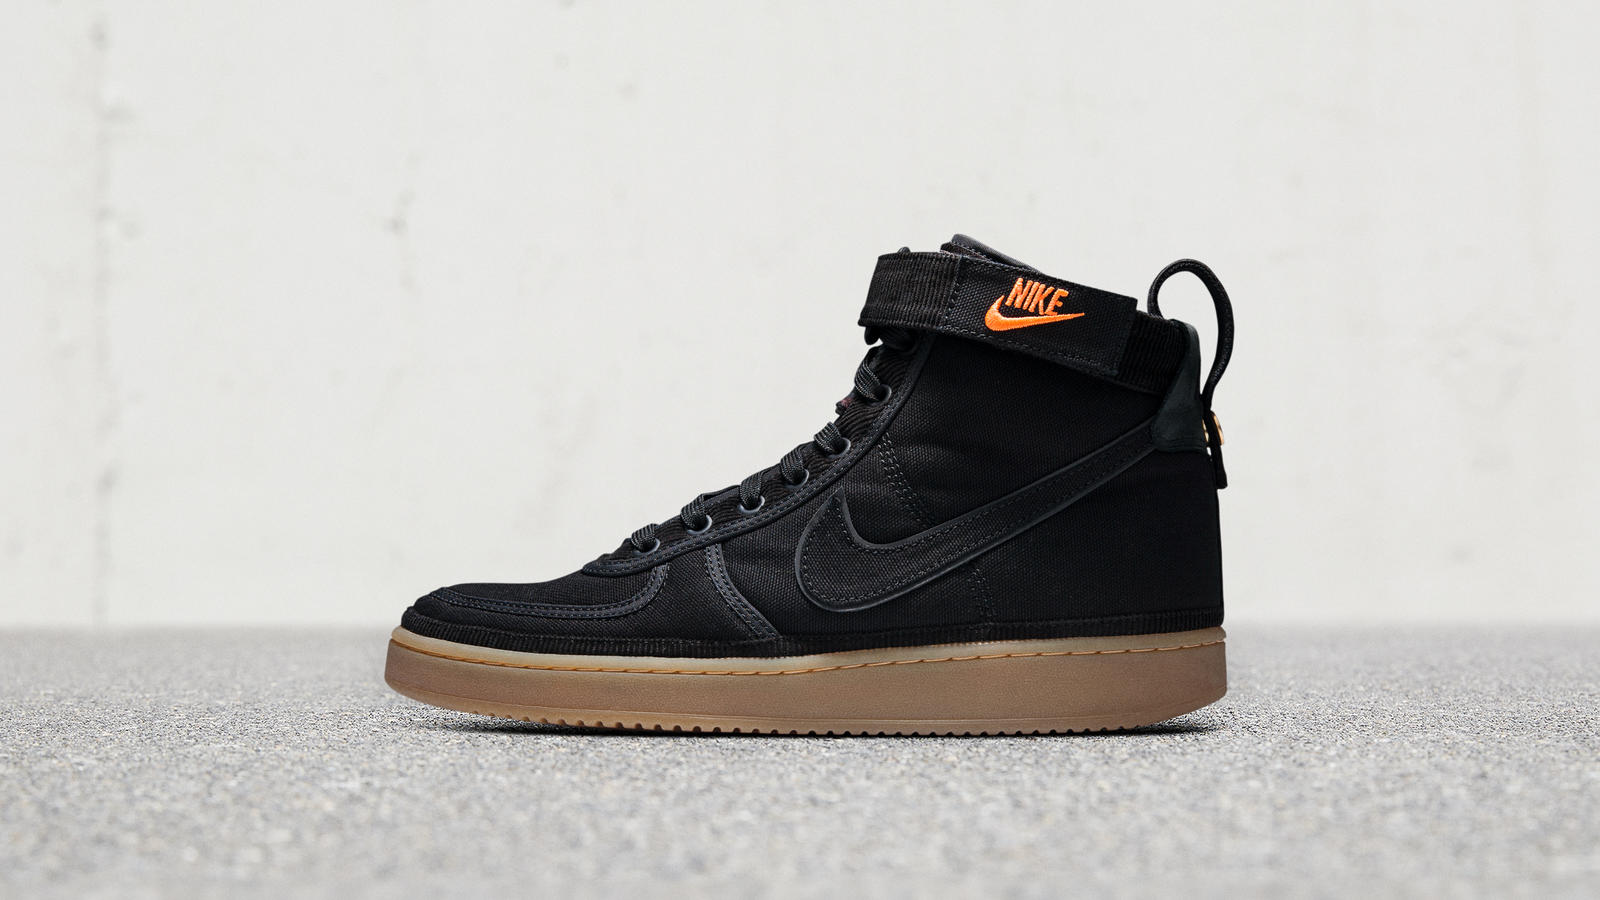 Featuredfootwear nsw nikexcarhartt 10.12.18 725 hd 1600